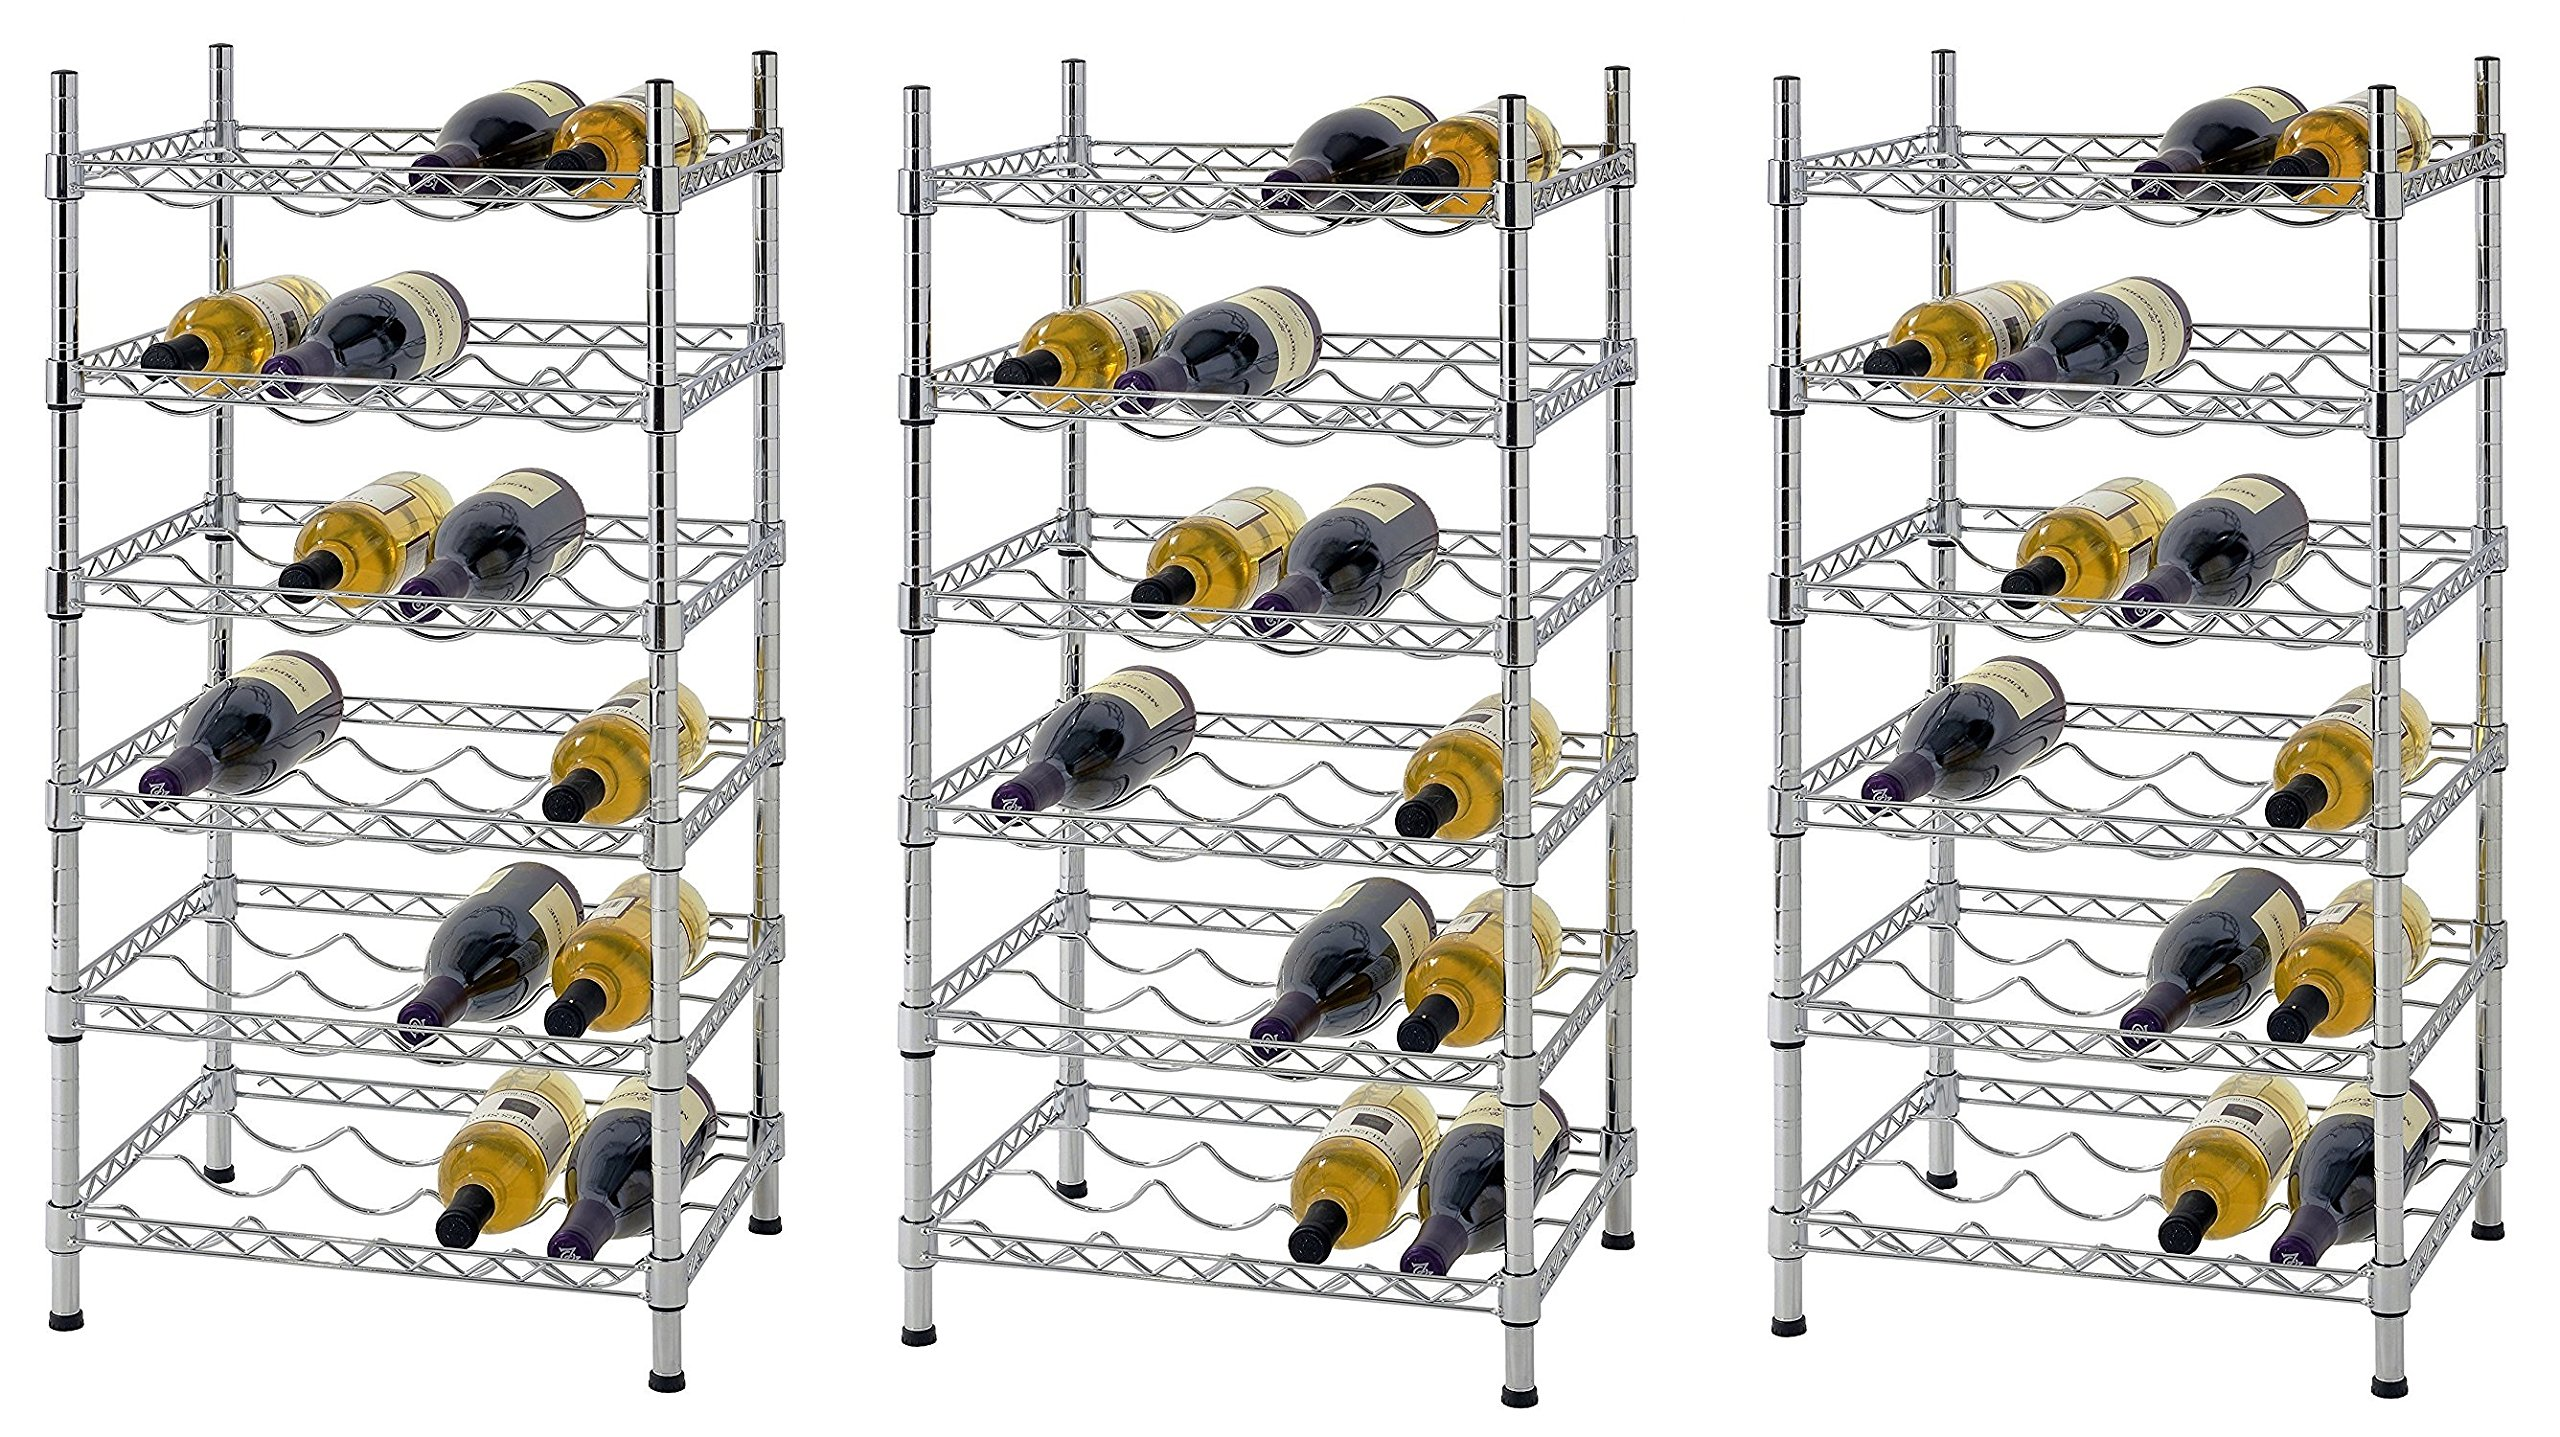 Muscle Rack WBS181435 24-Bottle Chrome Wine Rack, 18'' by 14'' by 35'', 35'' Height, 18'' width, 660 lb. Load Capacity (Pack of 3)